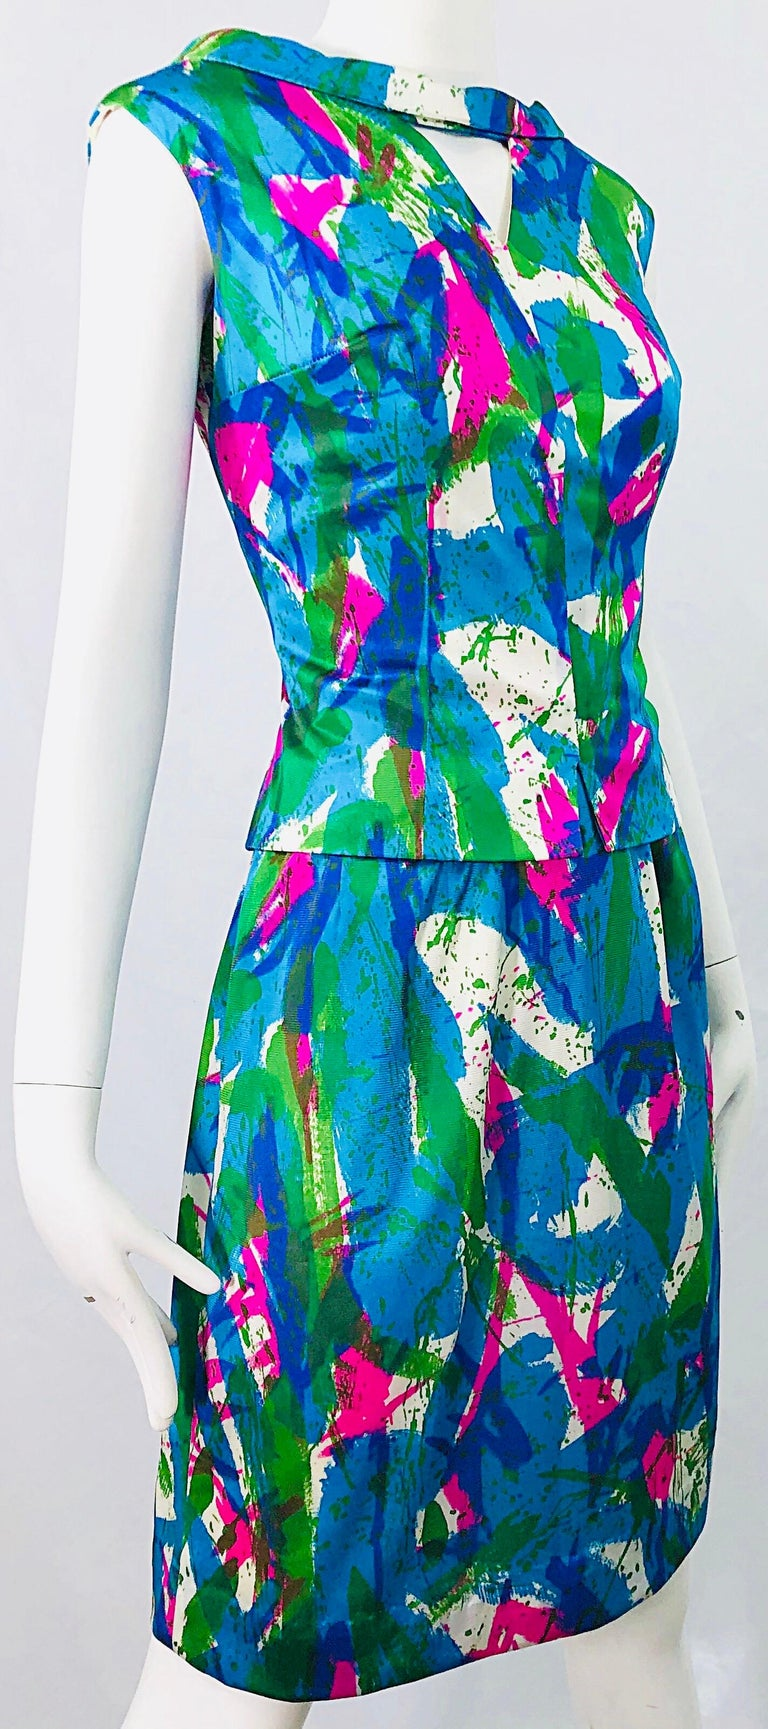 Chic 1960s Neon Abstract Print Two Piece Vintage 60s Sheath Dress + Top Blouse  For Sale 4